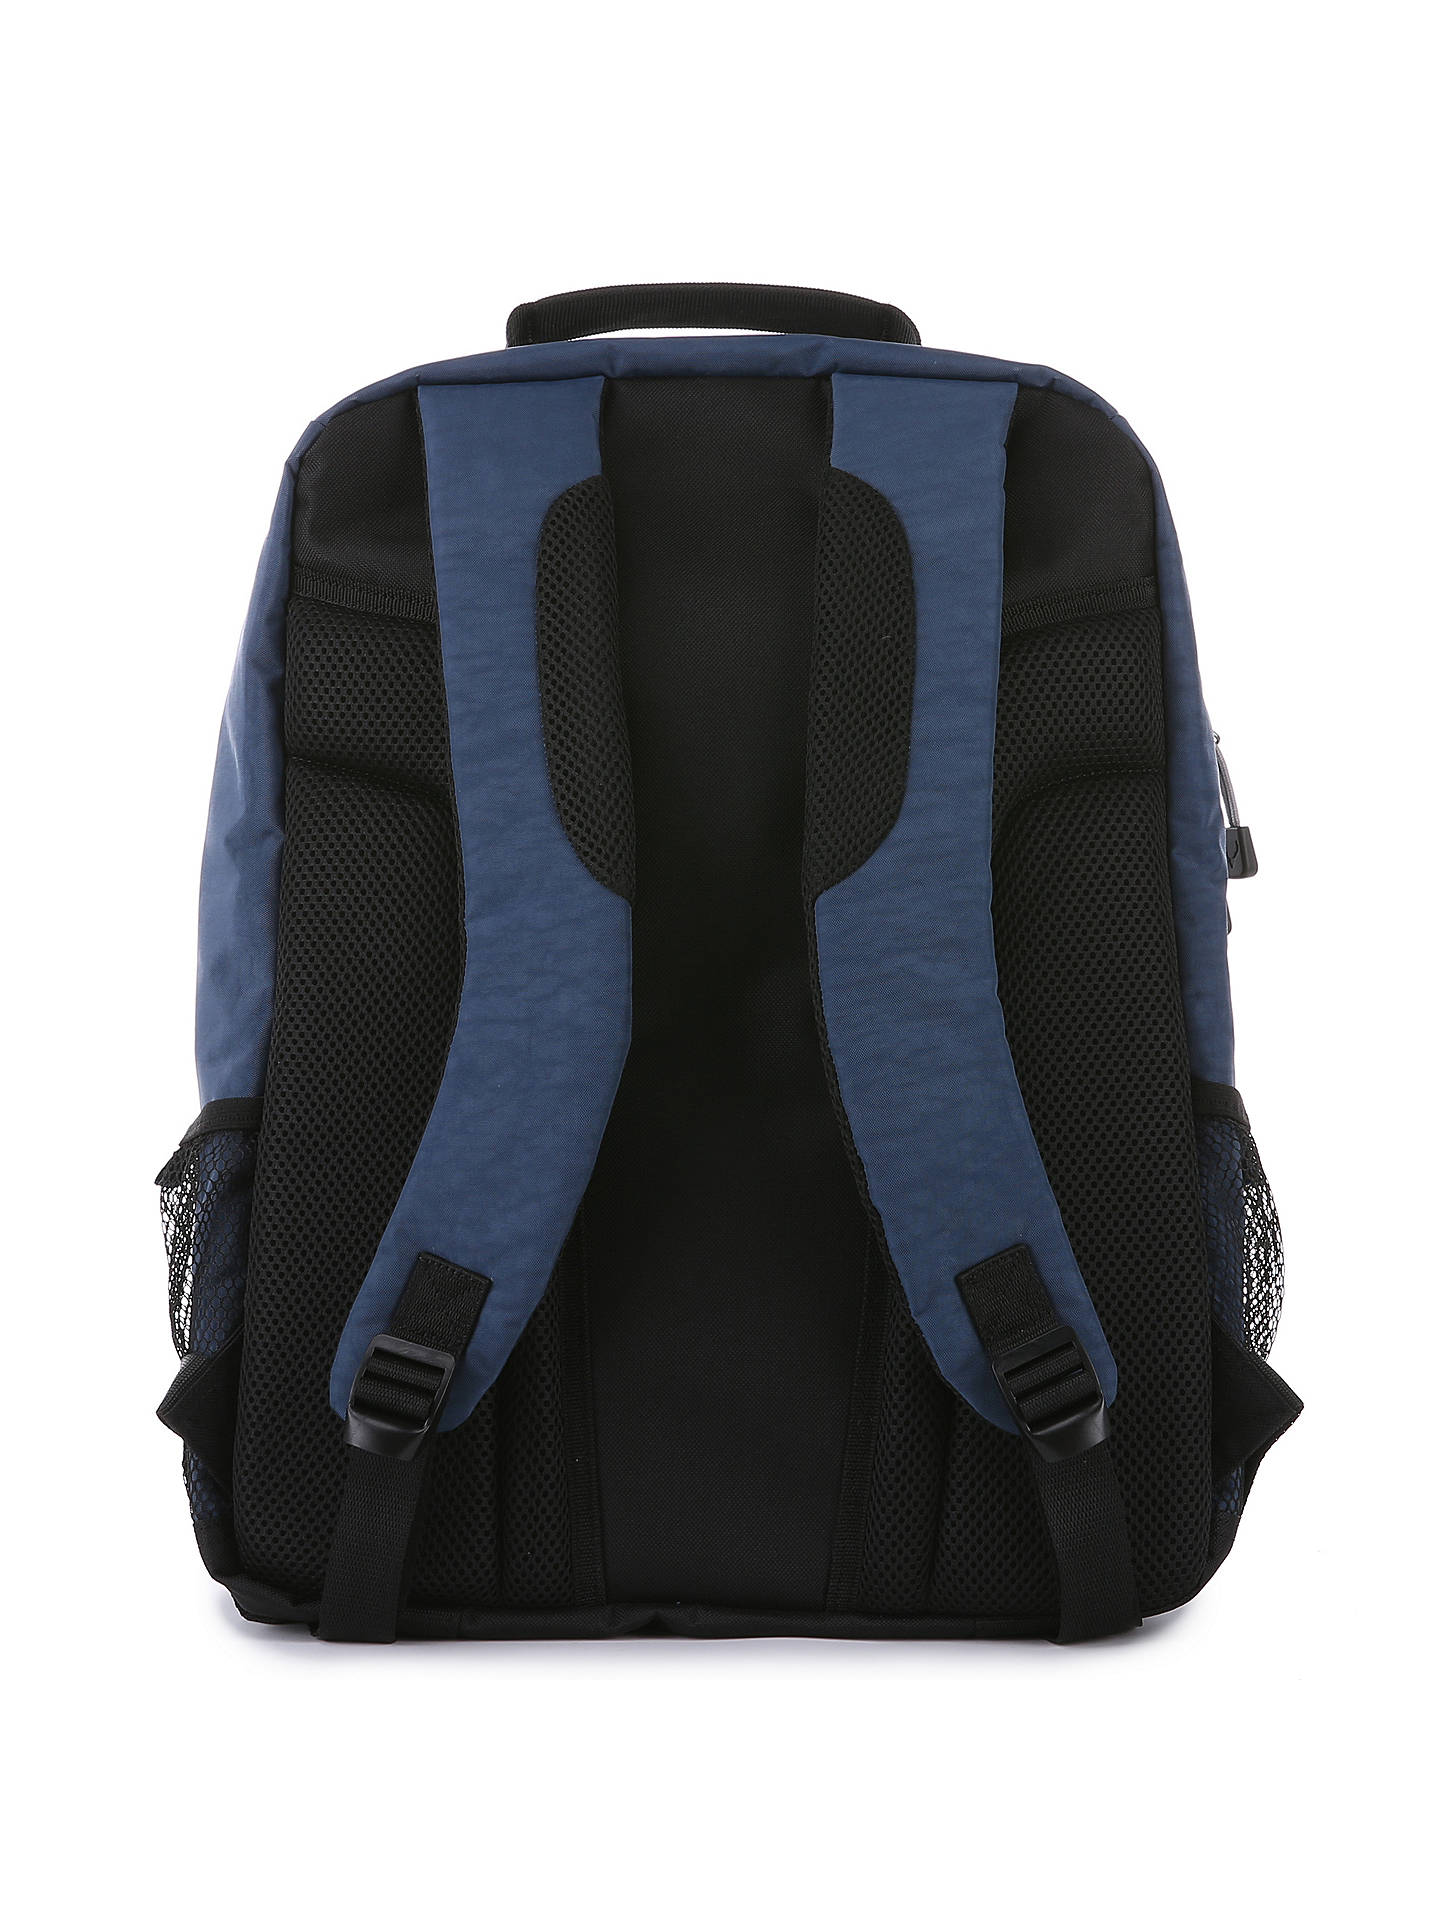 BuyAntler Urbanite Evolve Backpack, Navy Online at johnlewis.com